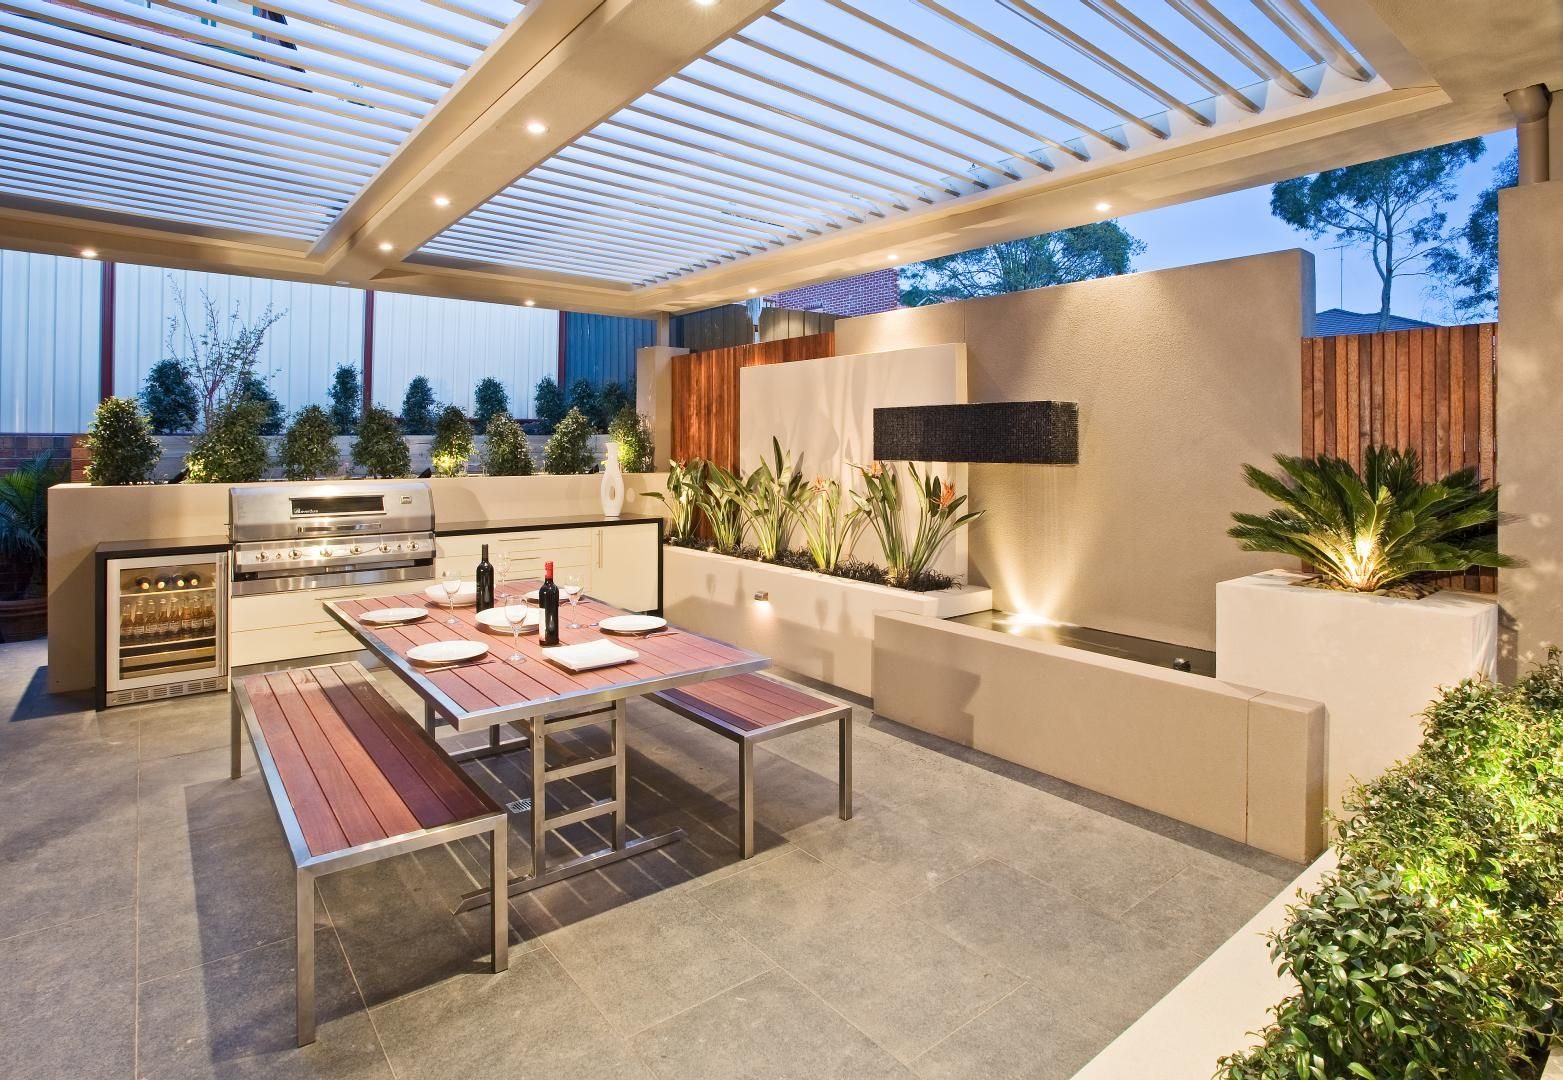 Outdoor Entertaining Area Project By Cos Design Outdoor Entertaining Pinterest Outdoor